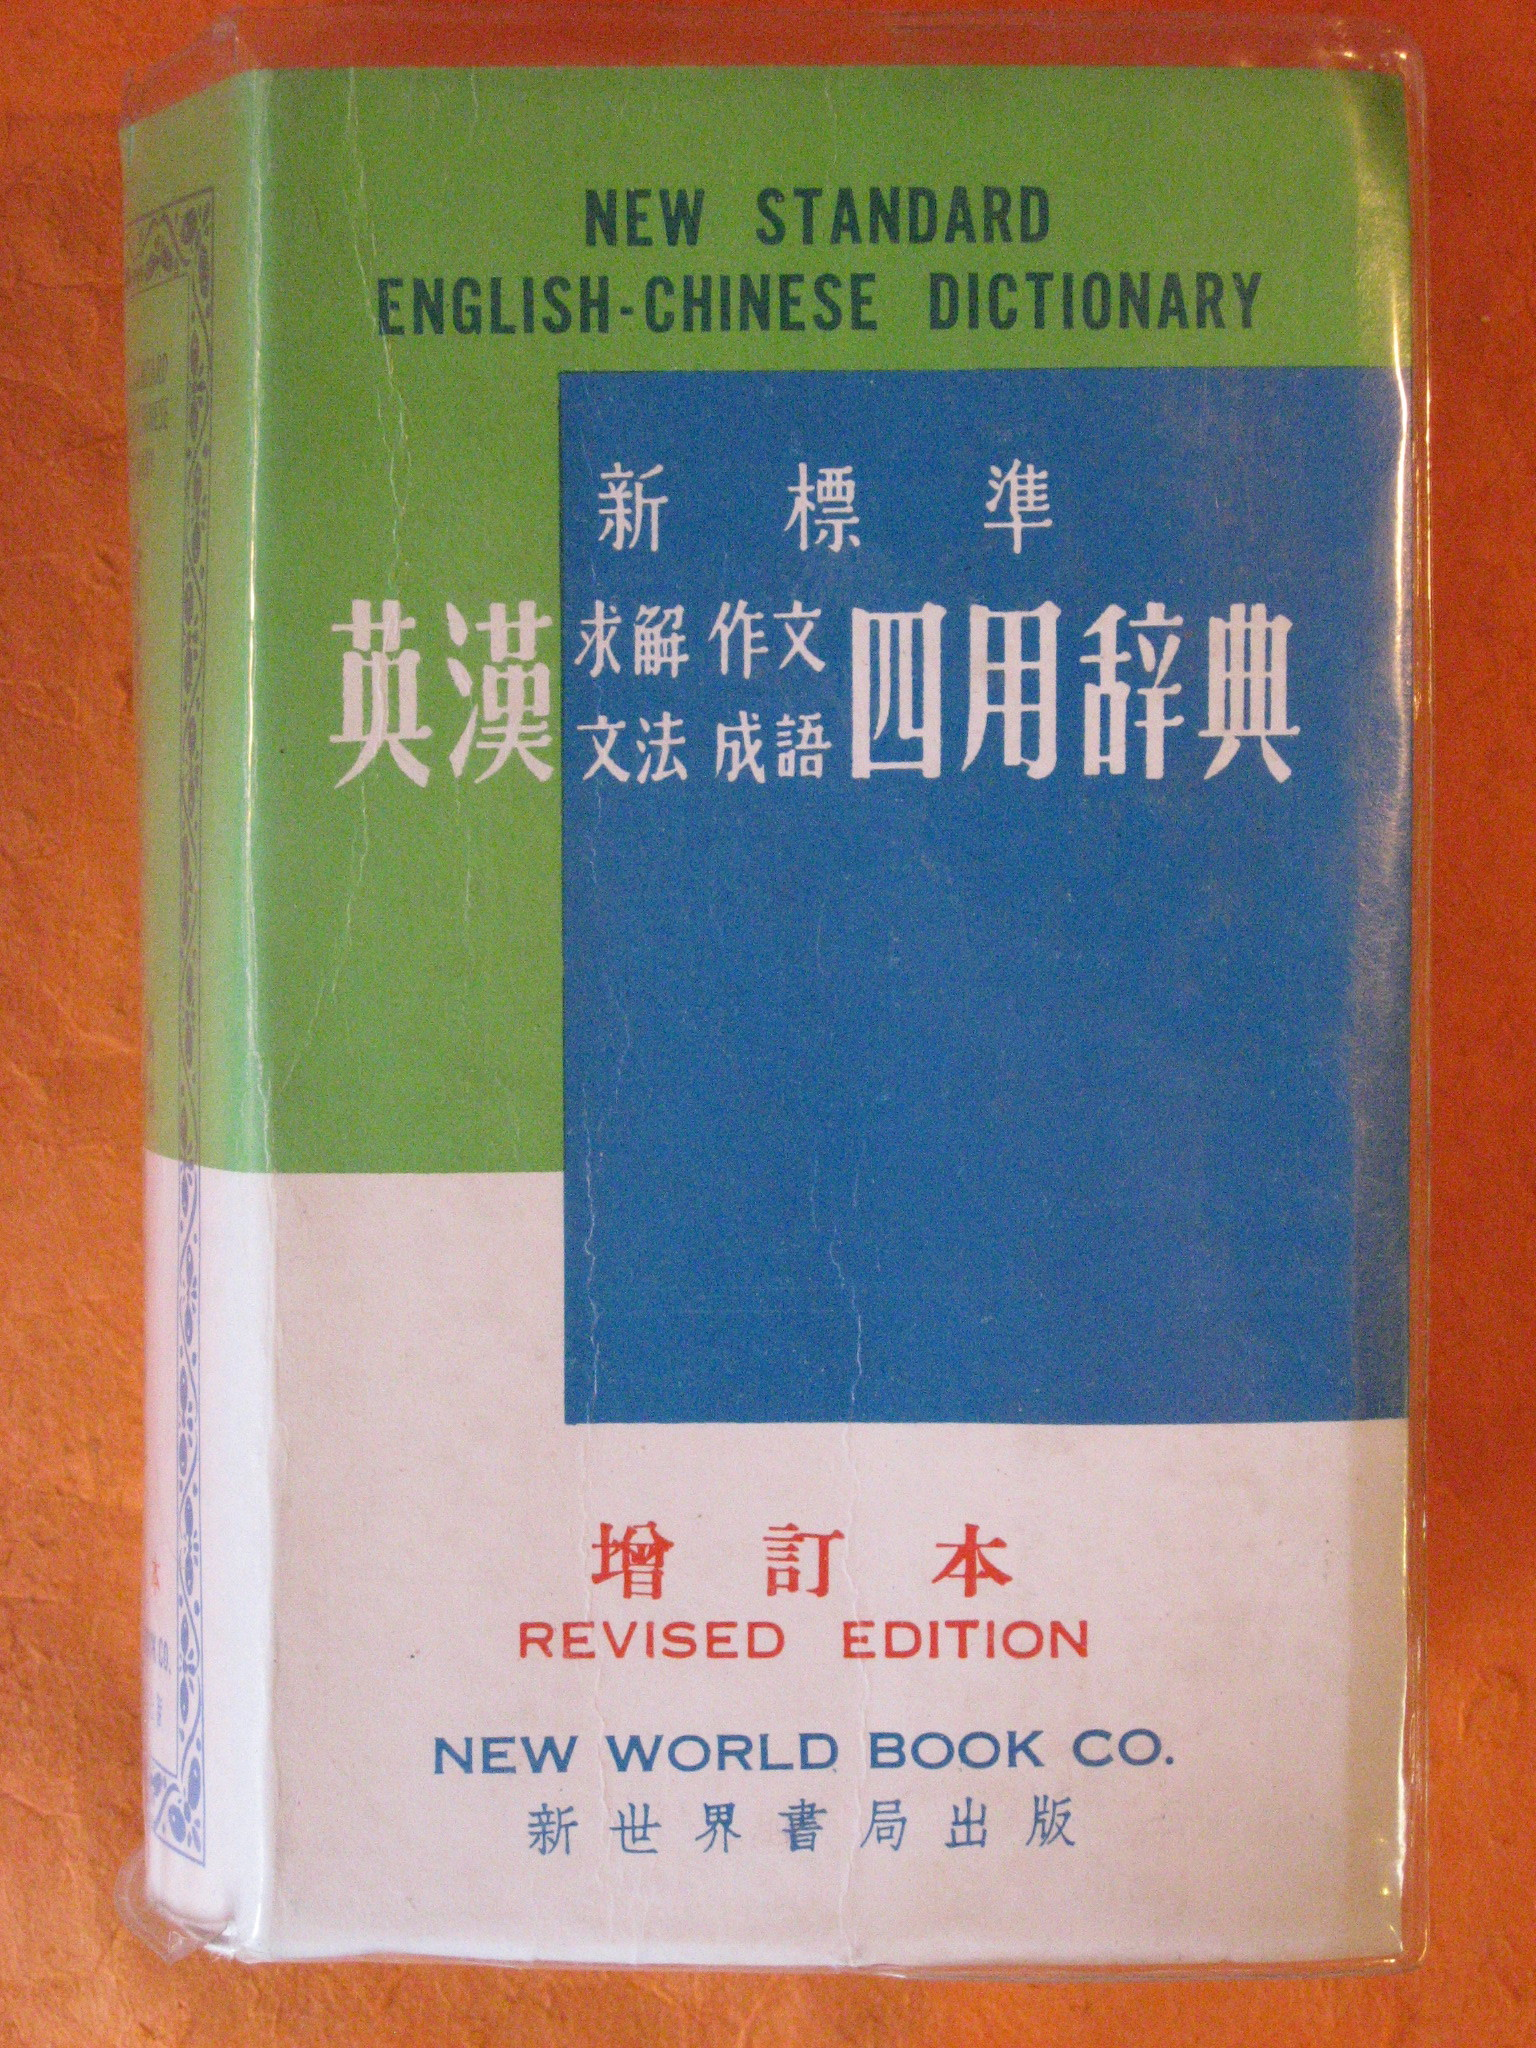 The New Standard English-Chinese Dictionary